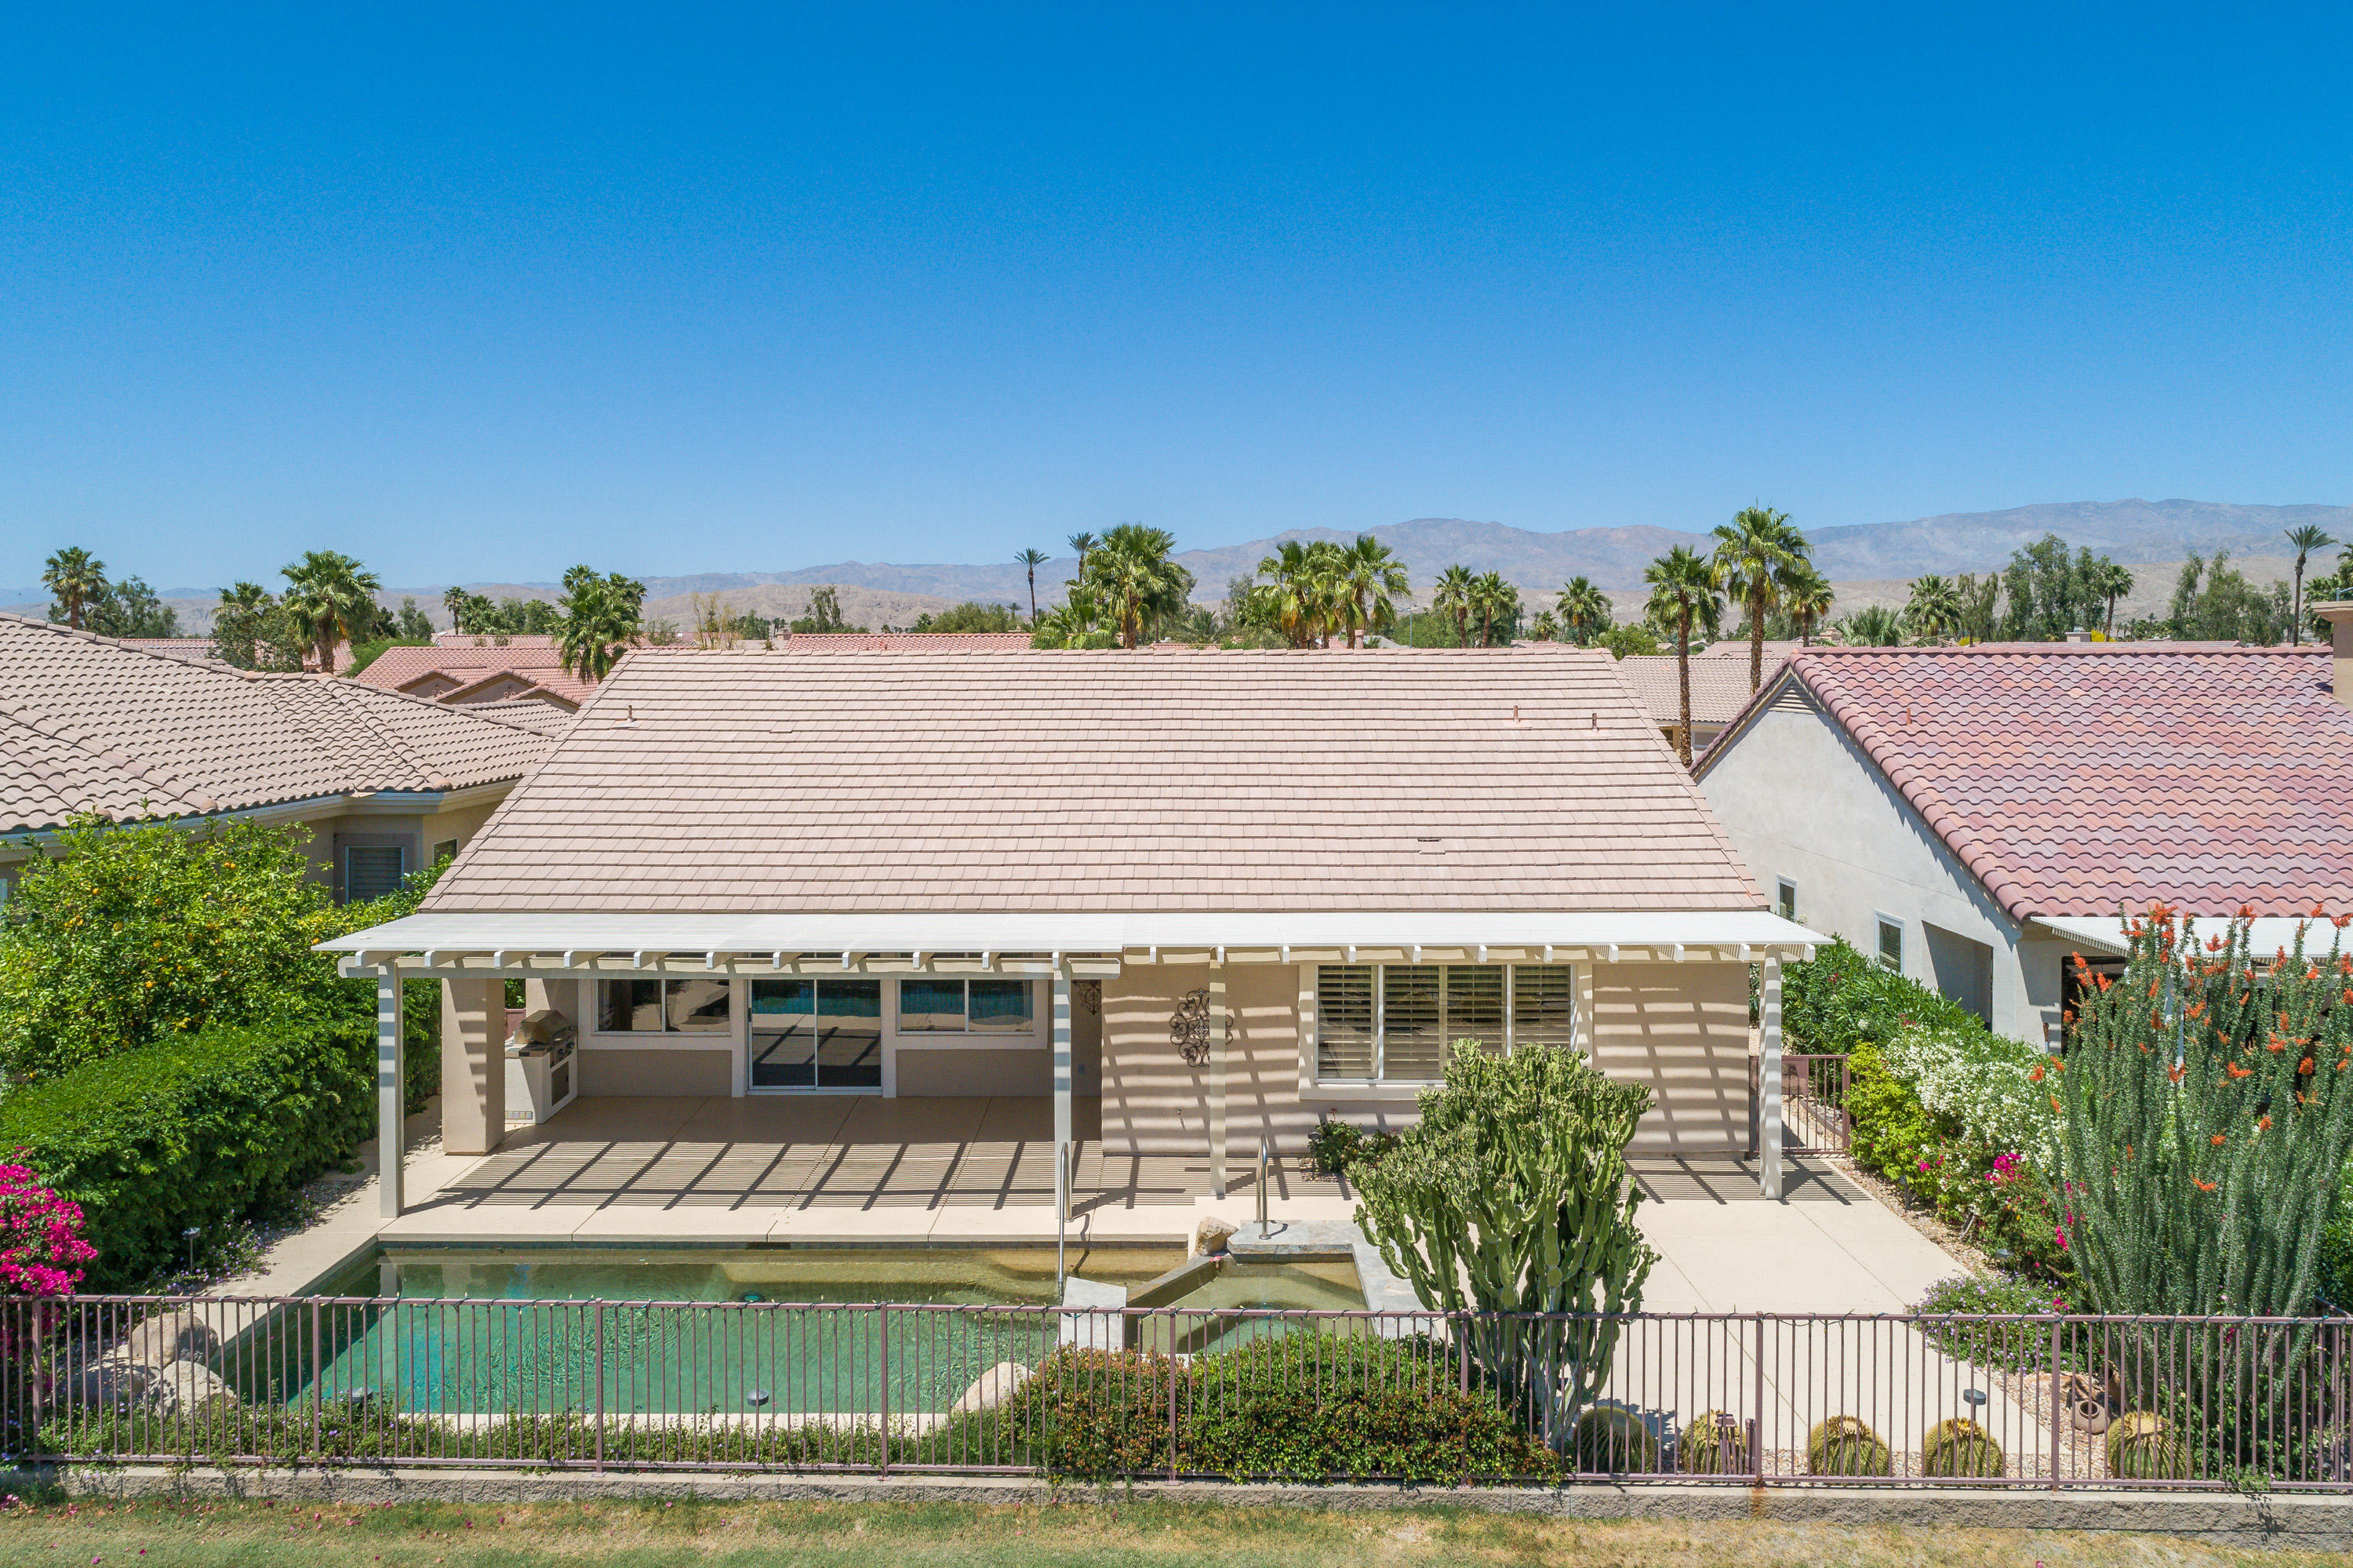 78141 Suncliff Circle, Palm Desert, California 92211, 2 Bedrooms Bedrooms, ,2 BathroomsBathrooms,Residential,For Sale,78141 Suncliff Circle,219042663